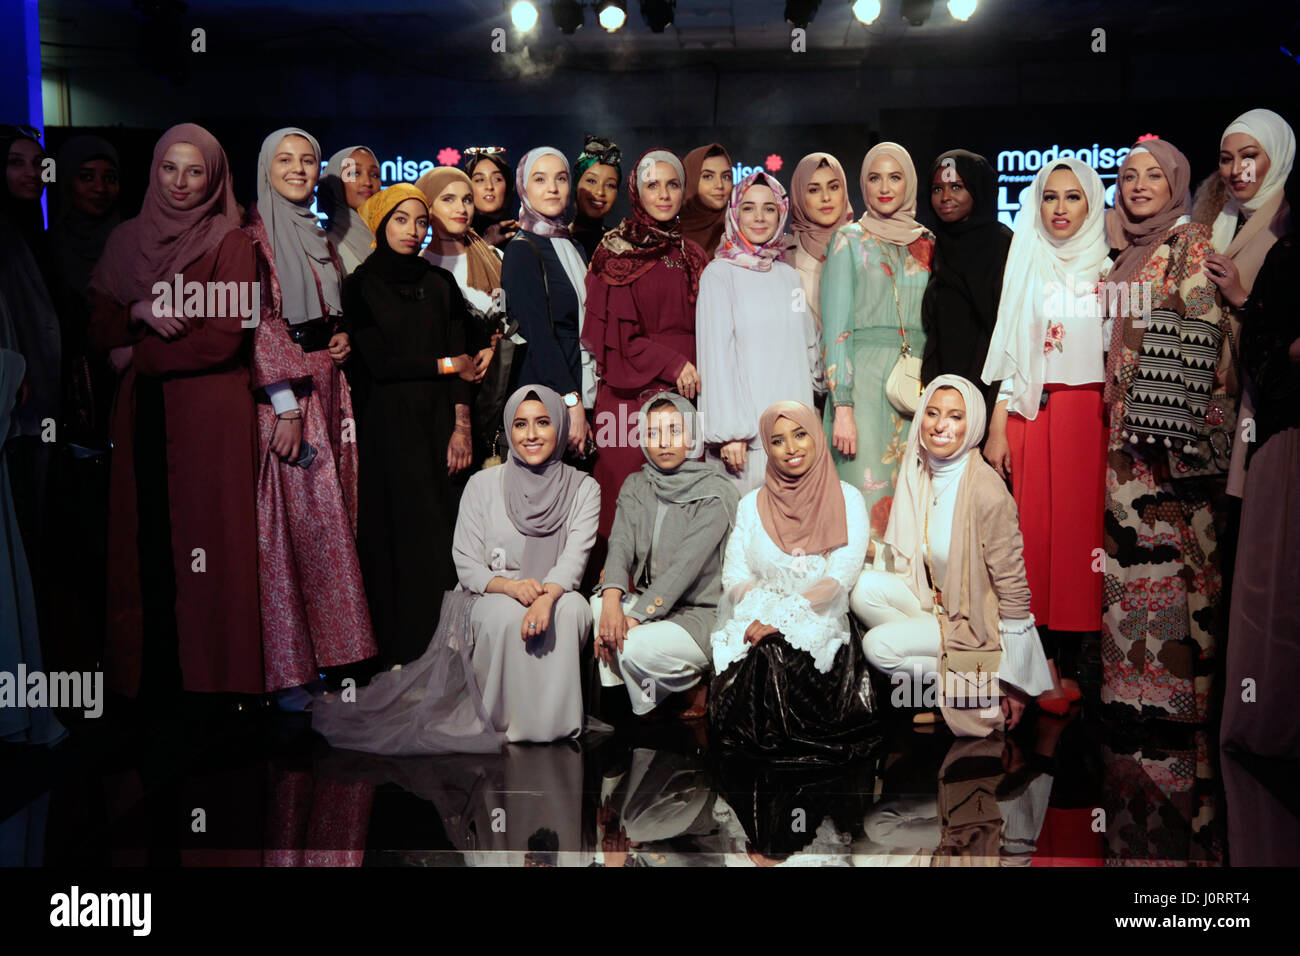 London, UK. 15th April 2017. London Olympia held the Muslim Lifestyle event ,showcasing  clothes ,silk garments,jewelry - Stock Image